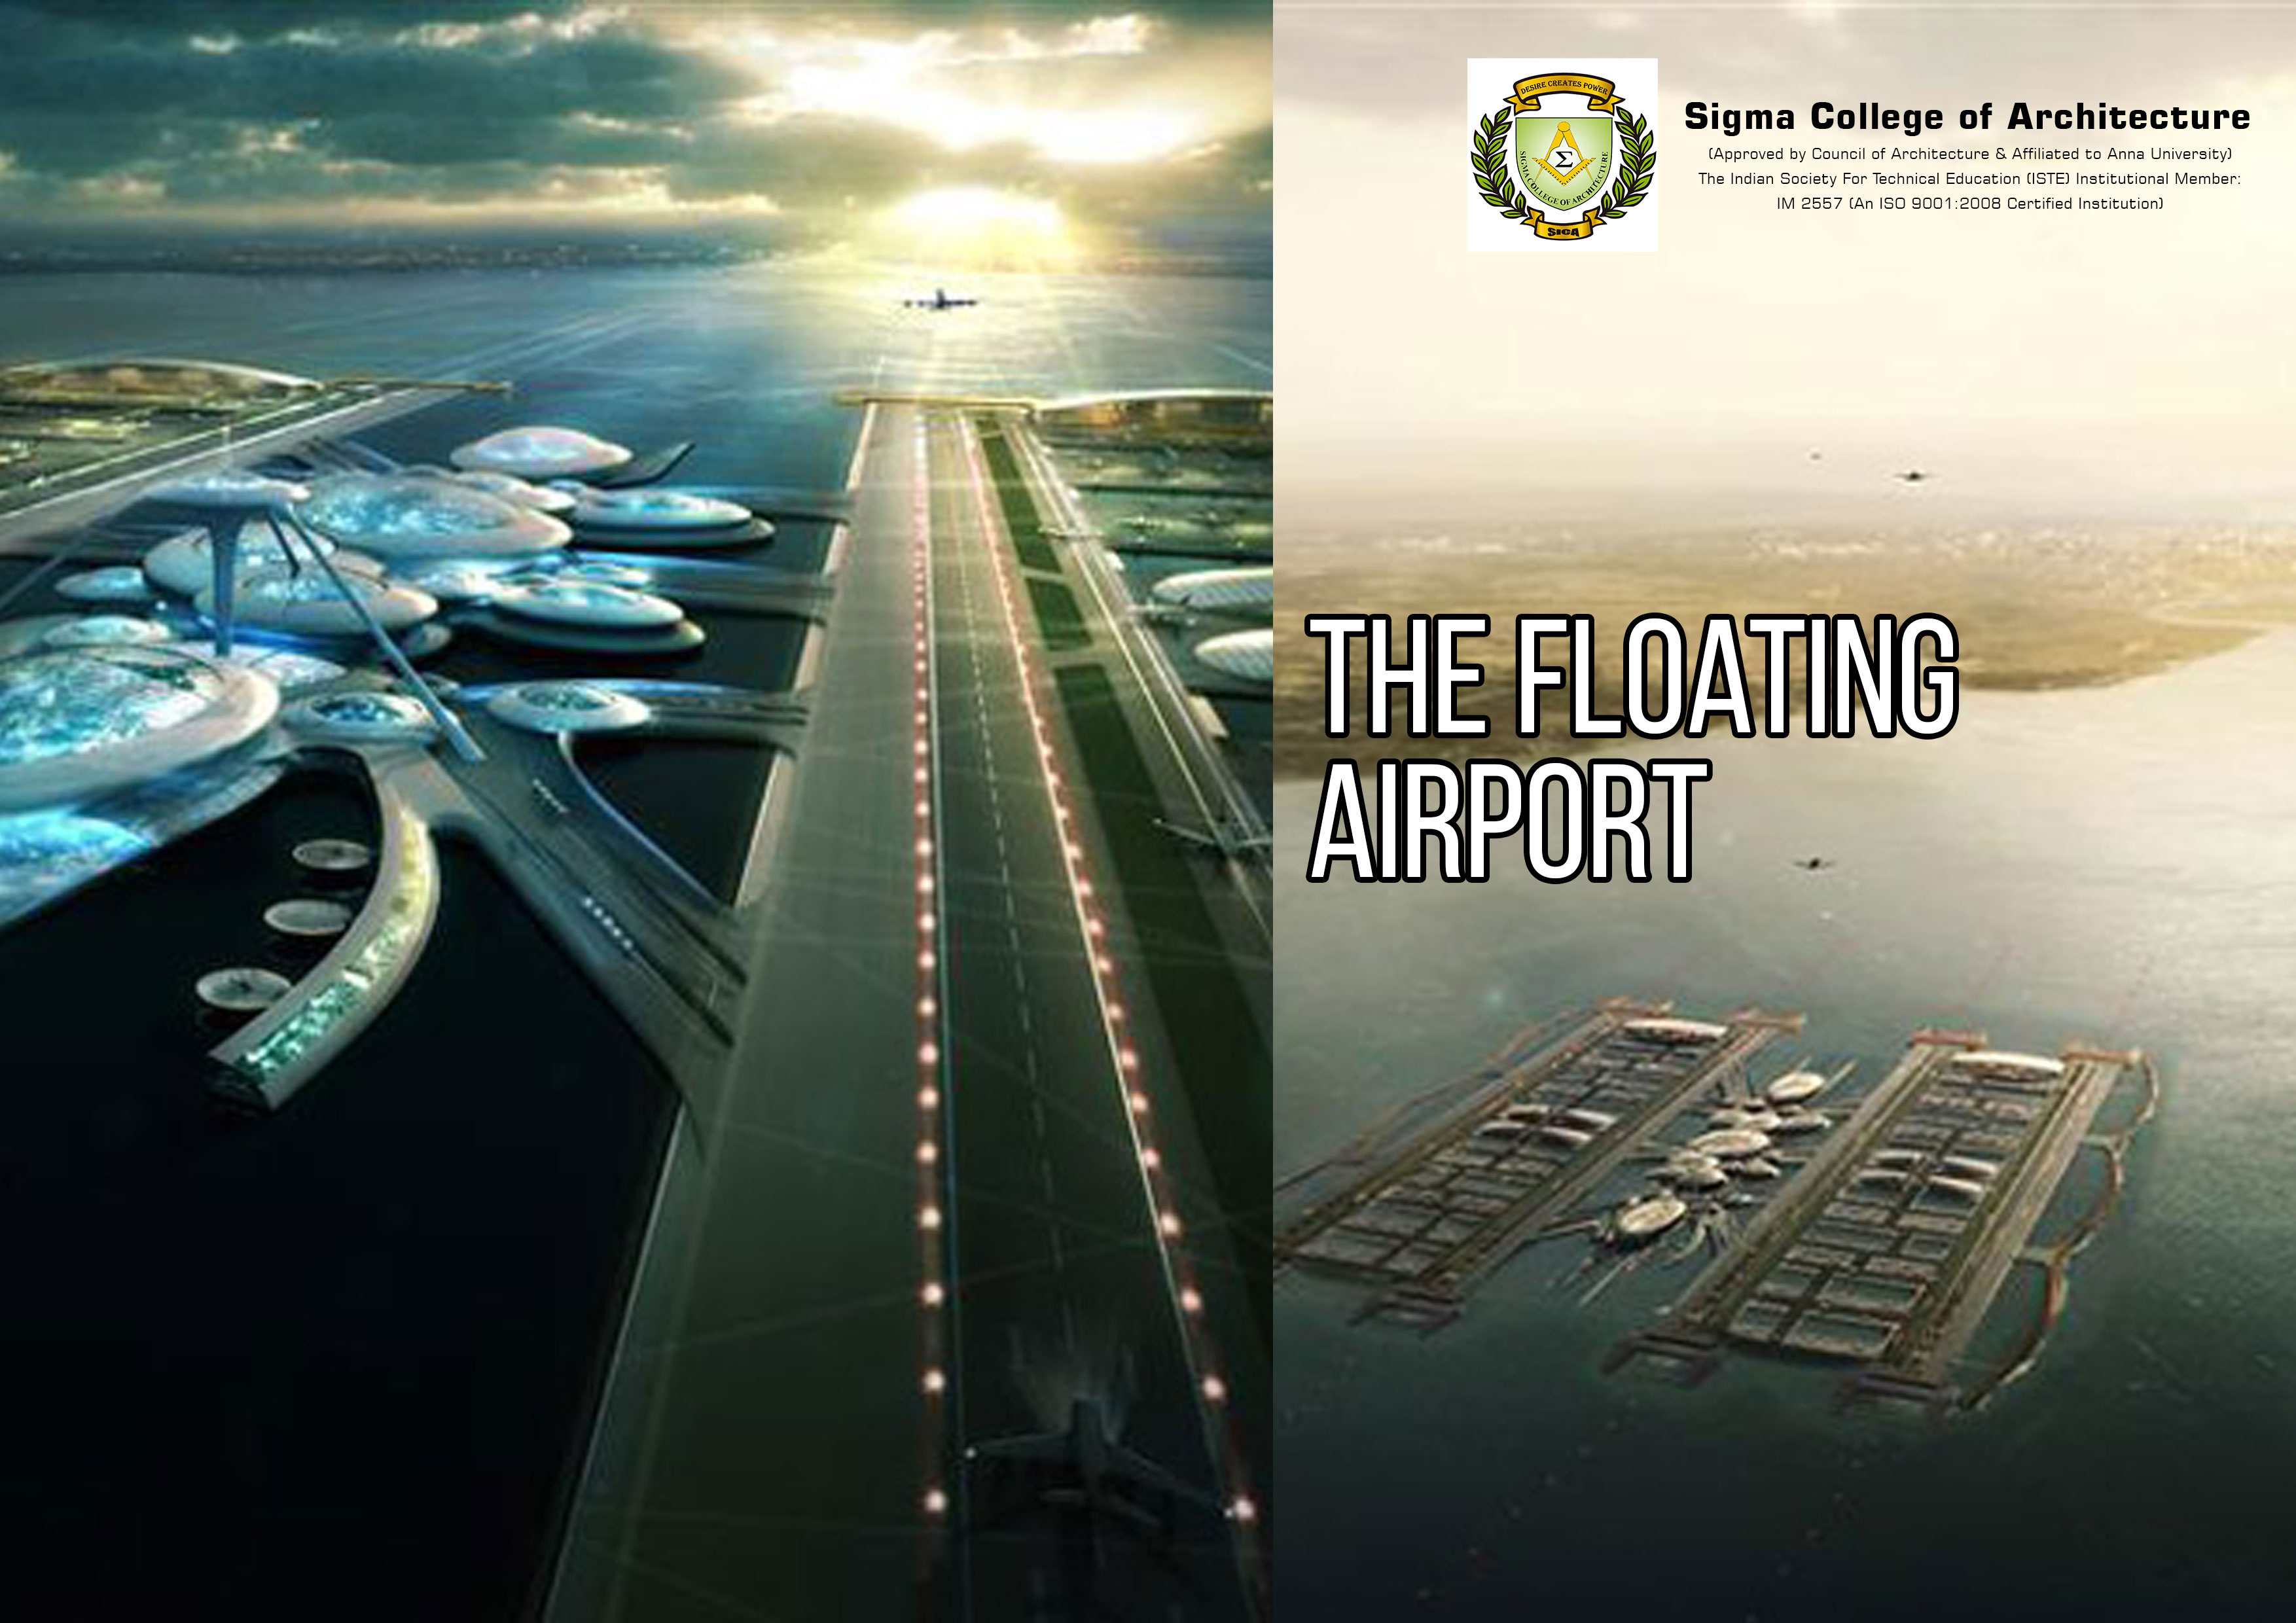 The Floating Airport